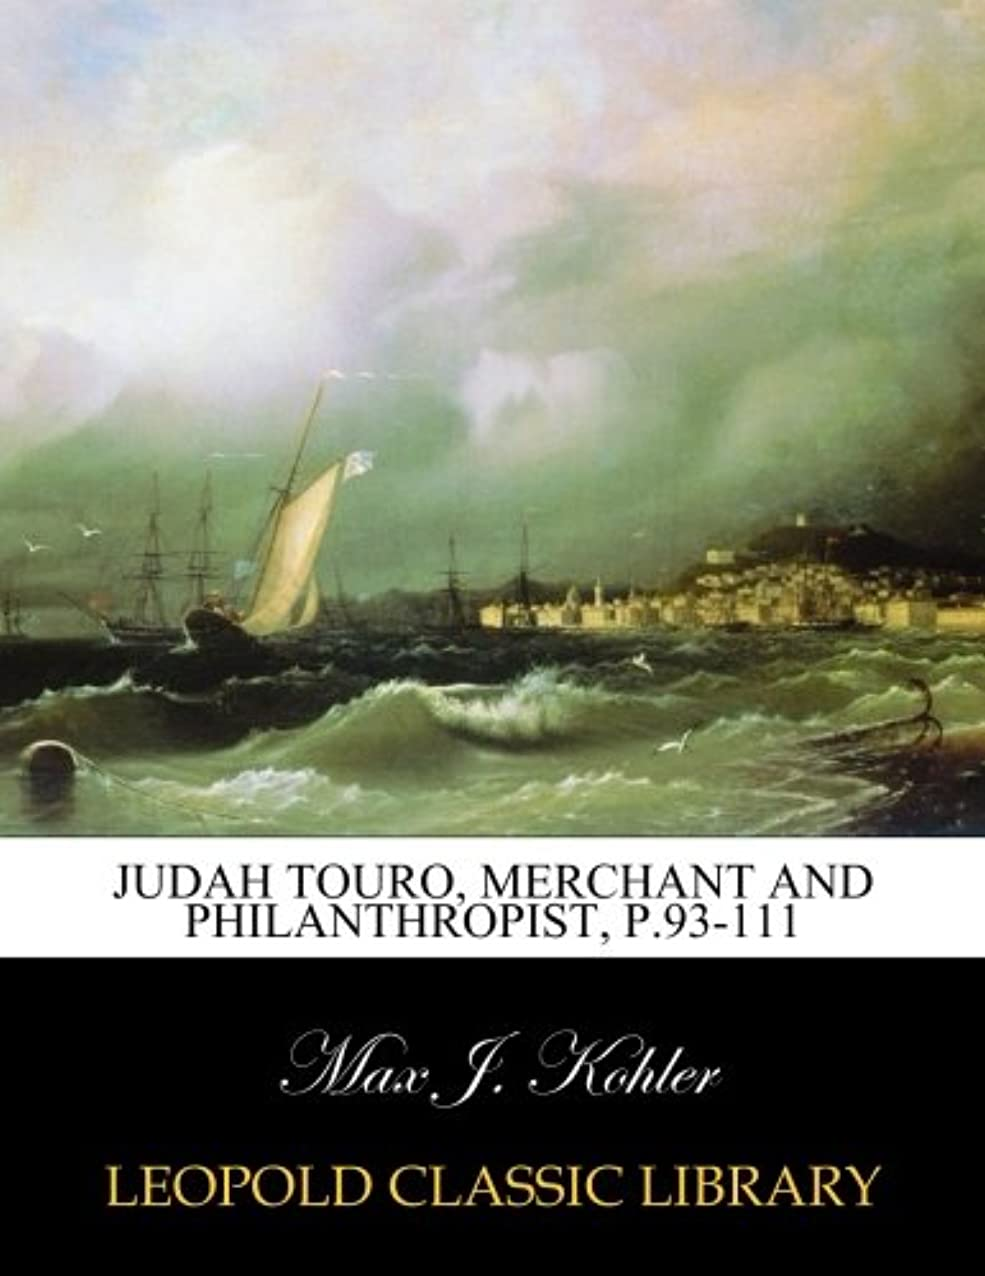 クライストチャーチ三角知的Judah Touro, merchant and philanthropist, p.93-111